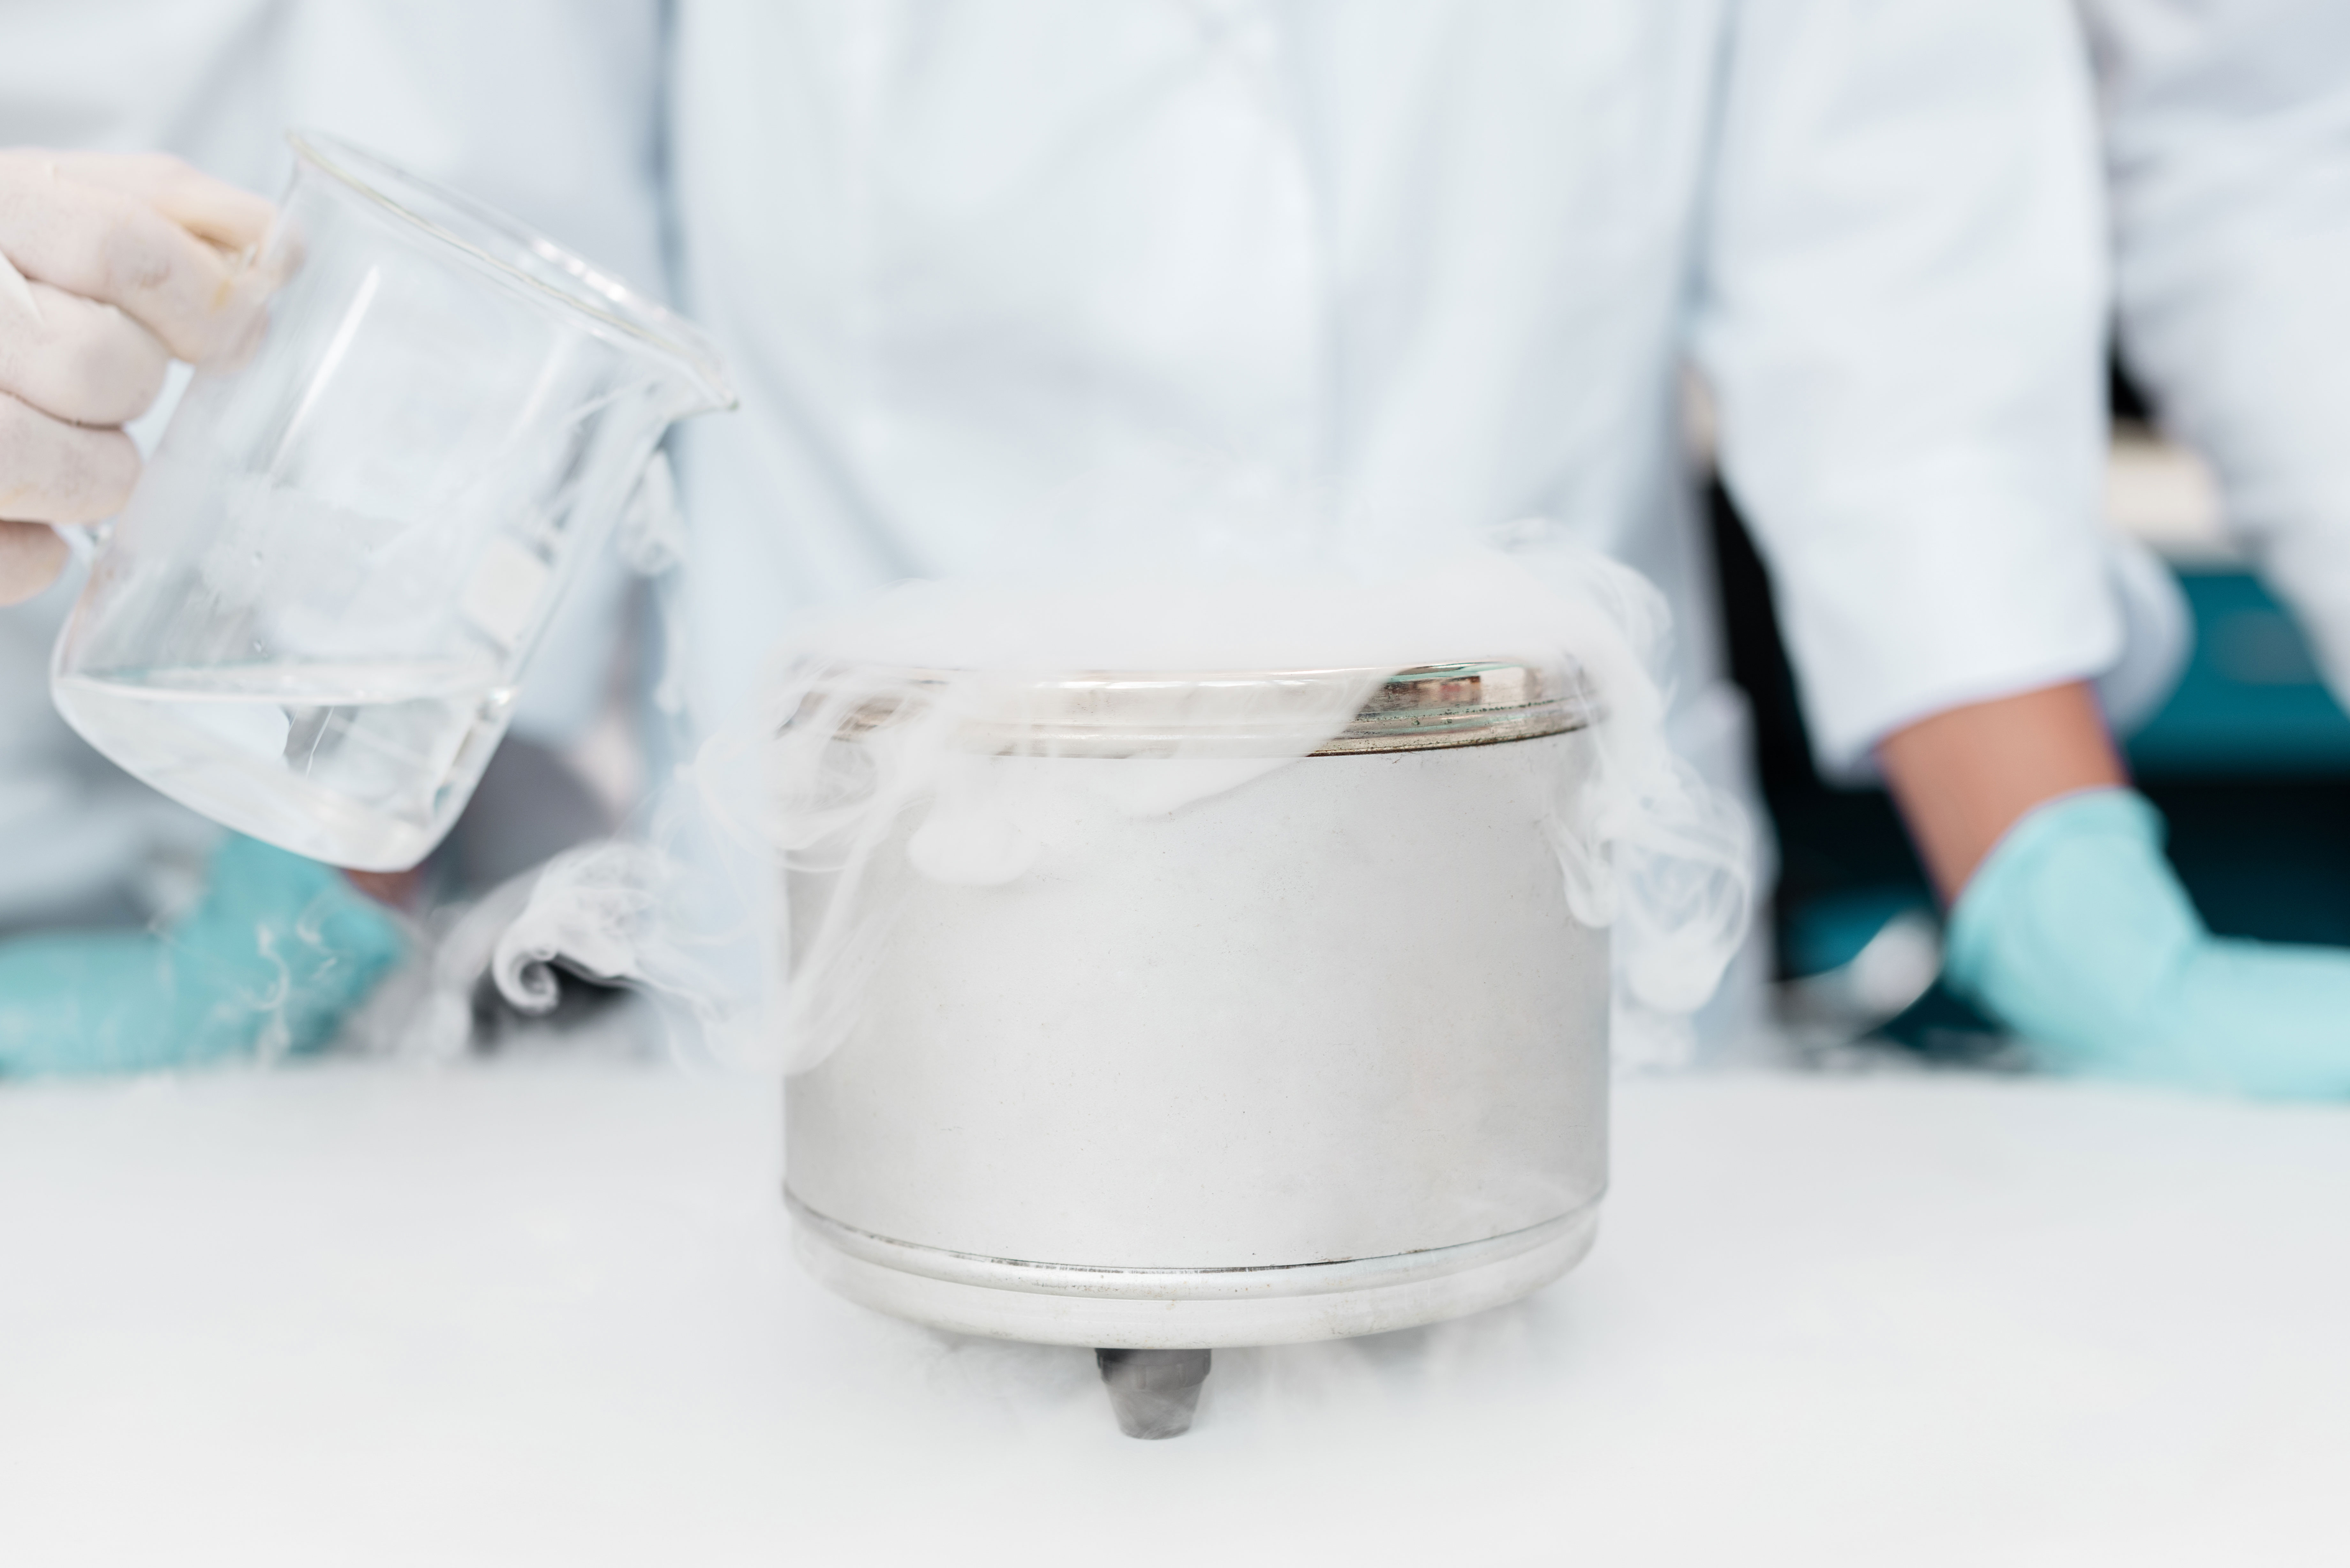 Mr Iceman Dry Ice used for science experiments